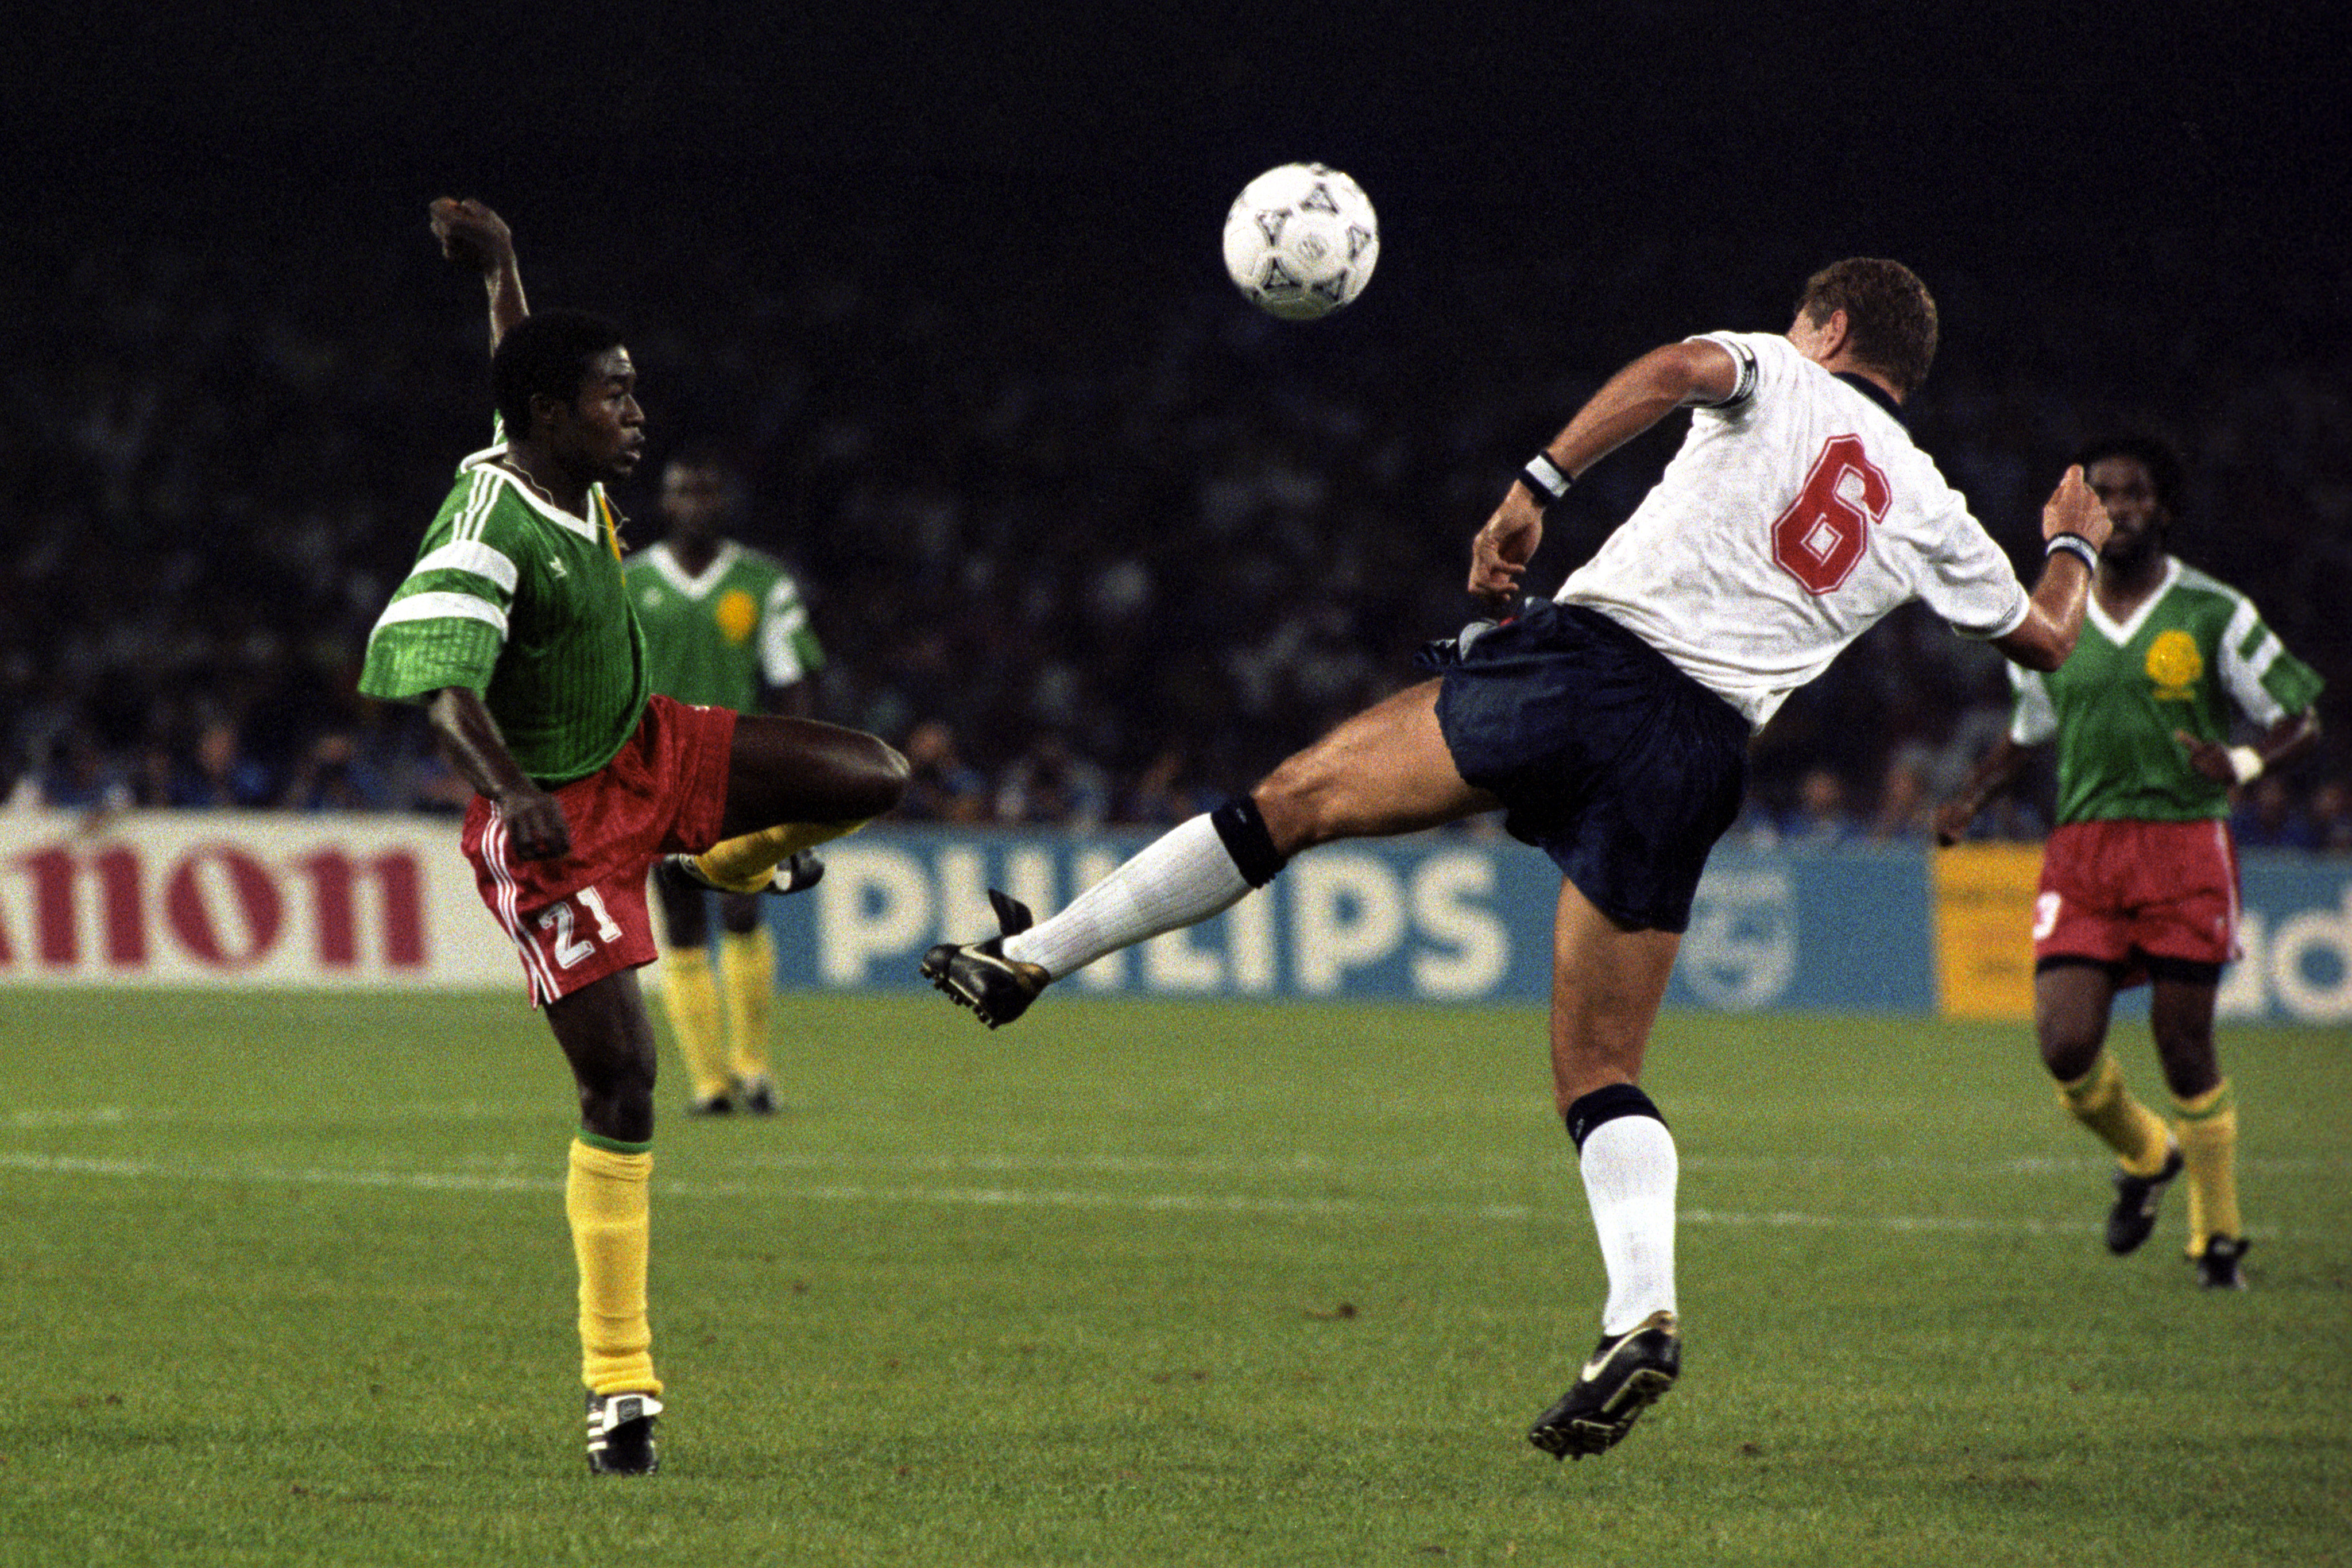 Terry Butcher playing for England against Cameroon